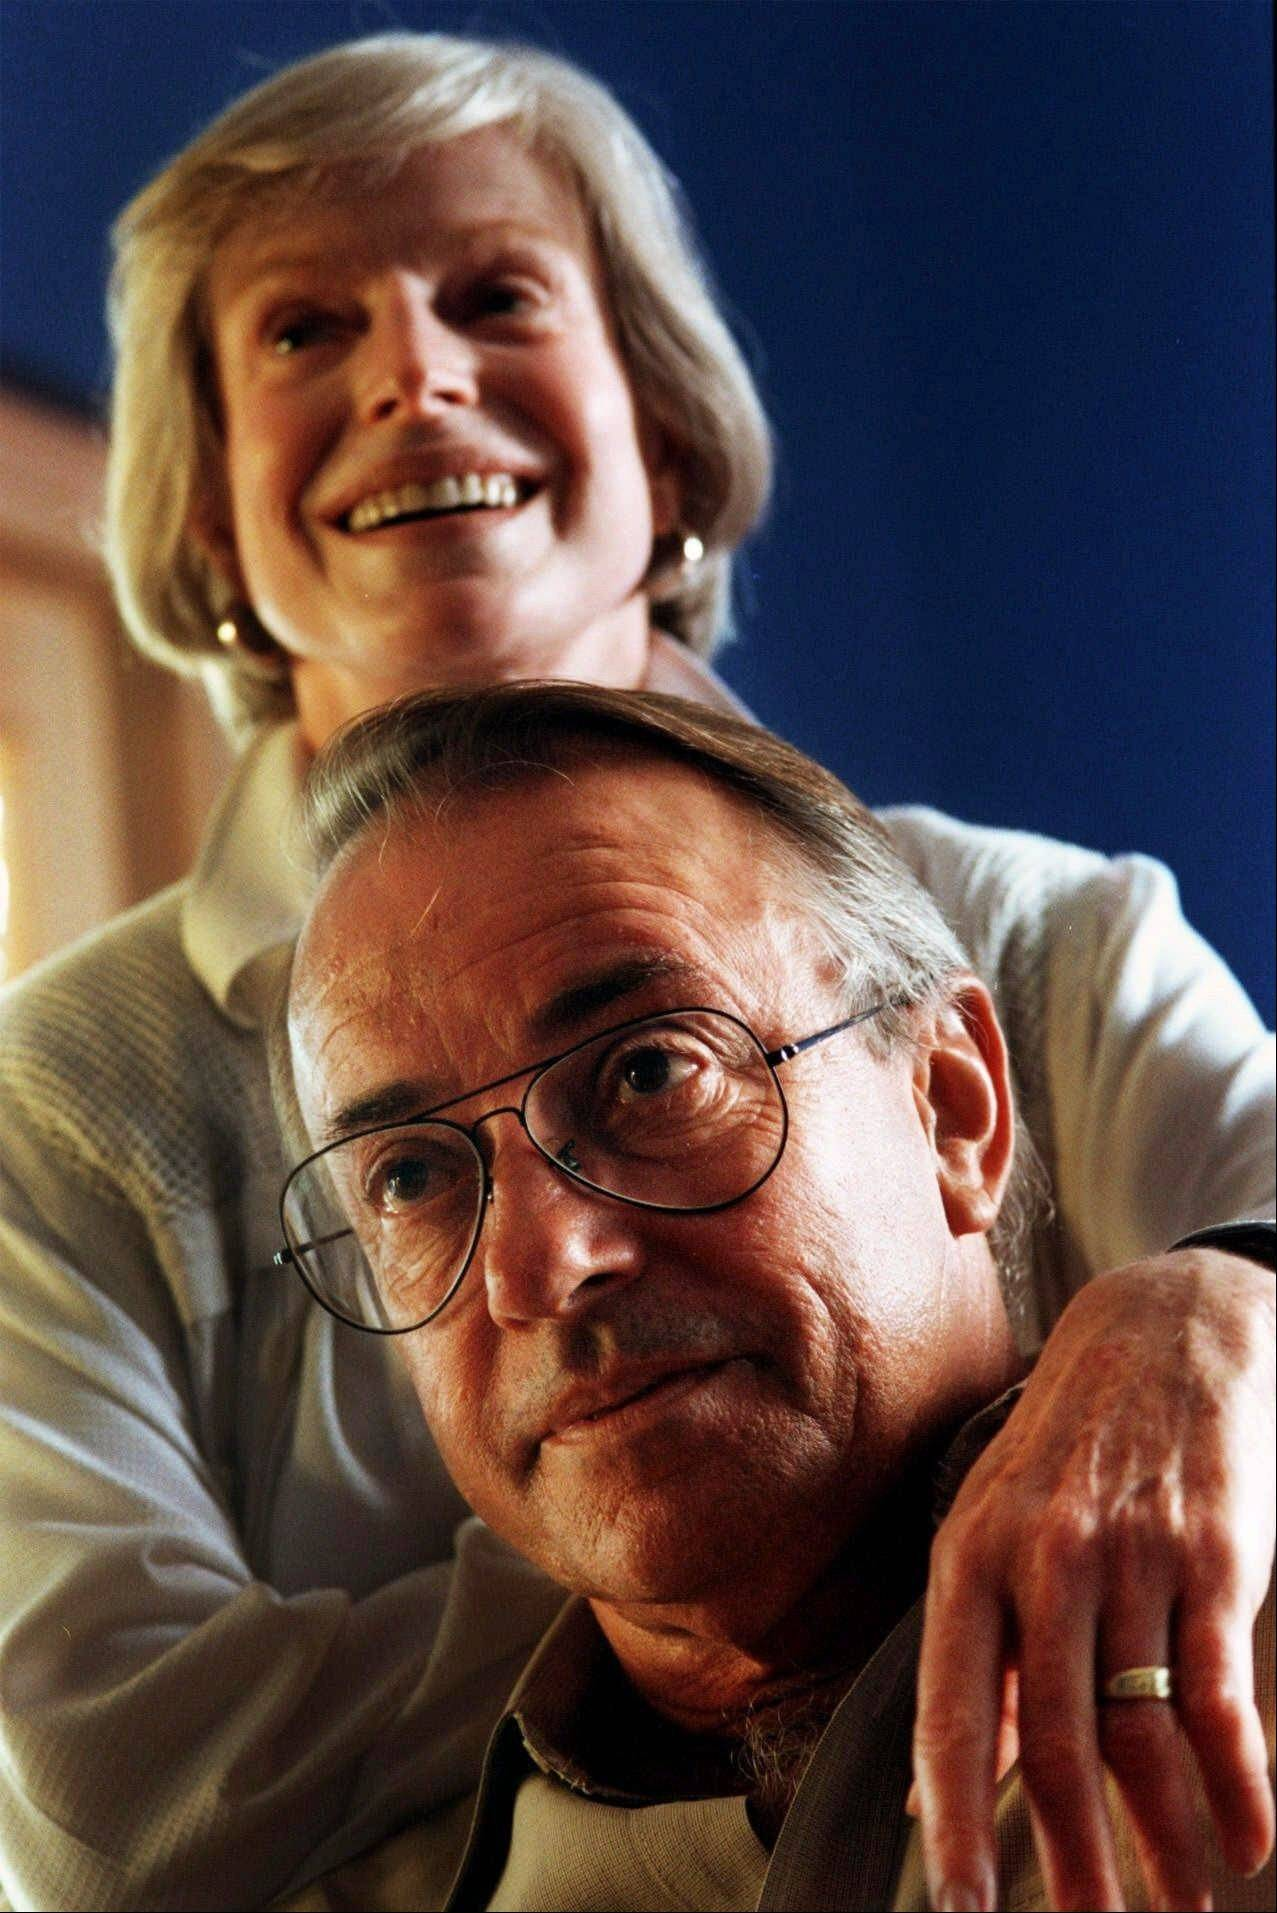 FILE - In this Oct. 29, 1999 file photo, retired newsman Richard Threlkeld and his wife, former CNN correspondent Betsy Aaron, pose at their home in Tucson, Ariz. Threlkeld, who worked for ABC News from 1982-89, spent the majority of his career at CBS News, died Friday morning in Amagansett, N.Y., and was pronounced dead at Southampton Hospital. He lived nearby in East Hampton.� (AP Photo/Arizona Daily Star, Chris Richards, file) MANDATORY CREDIT